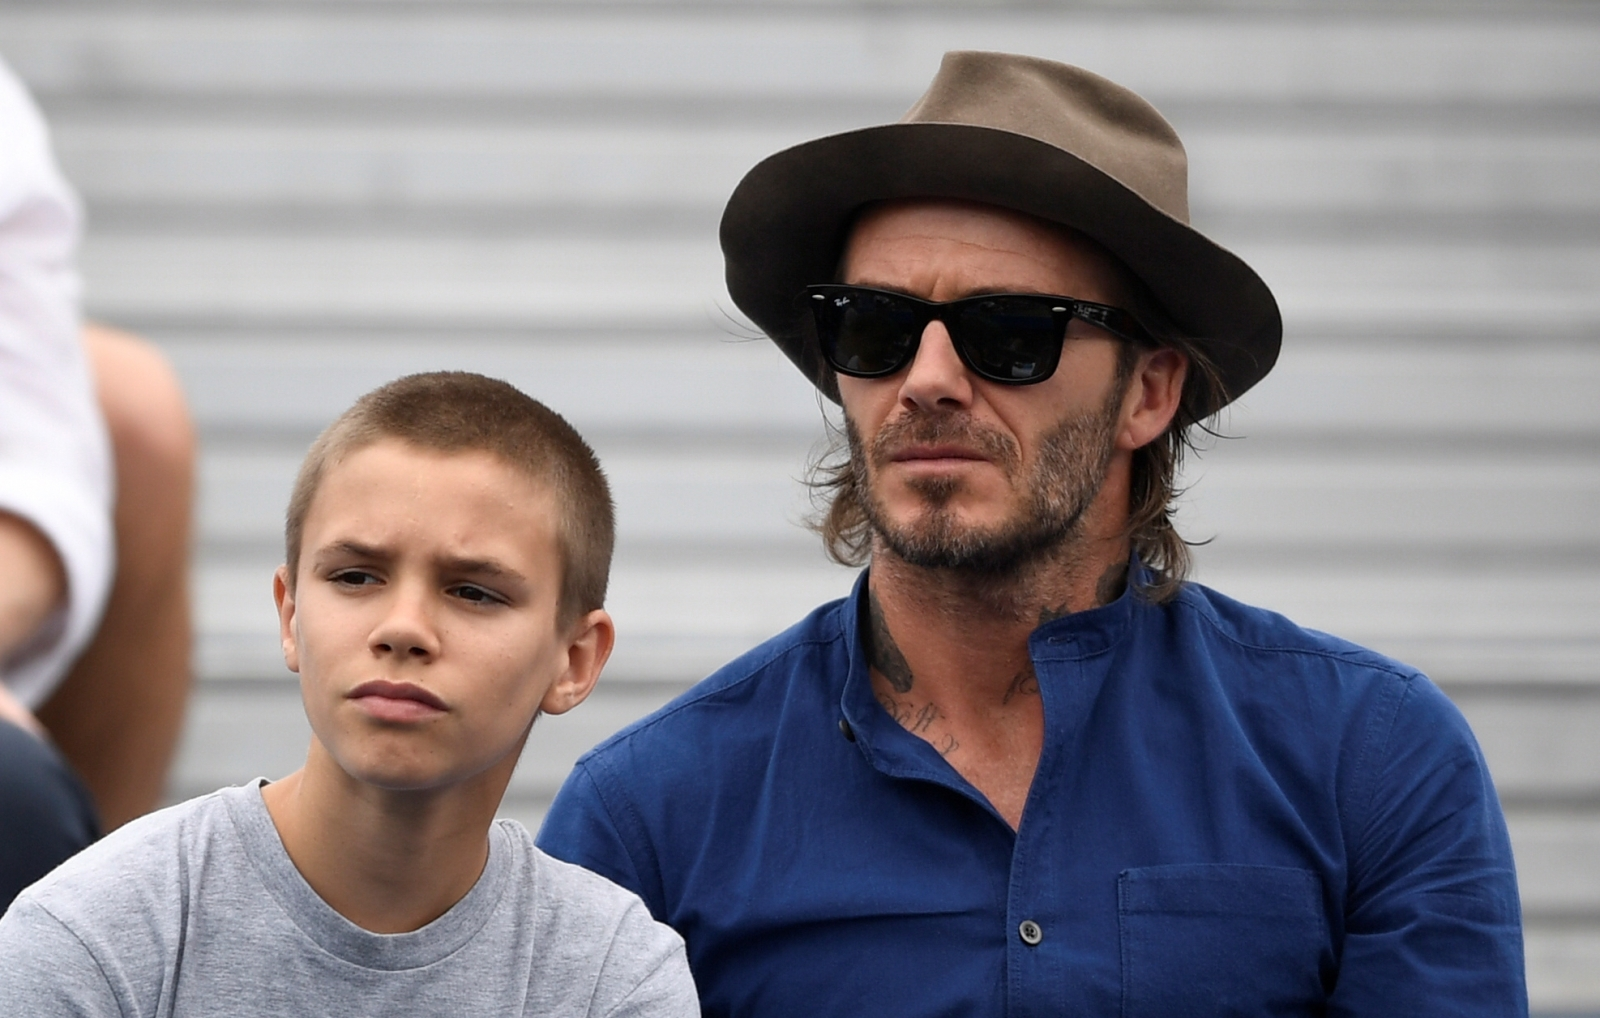 I Look Up To Be Just Like You When I Am Older Cruz Beckham Pens Adorable Birthday Message For